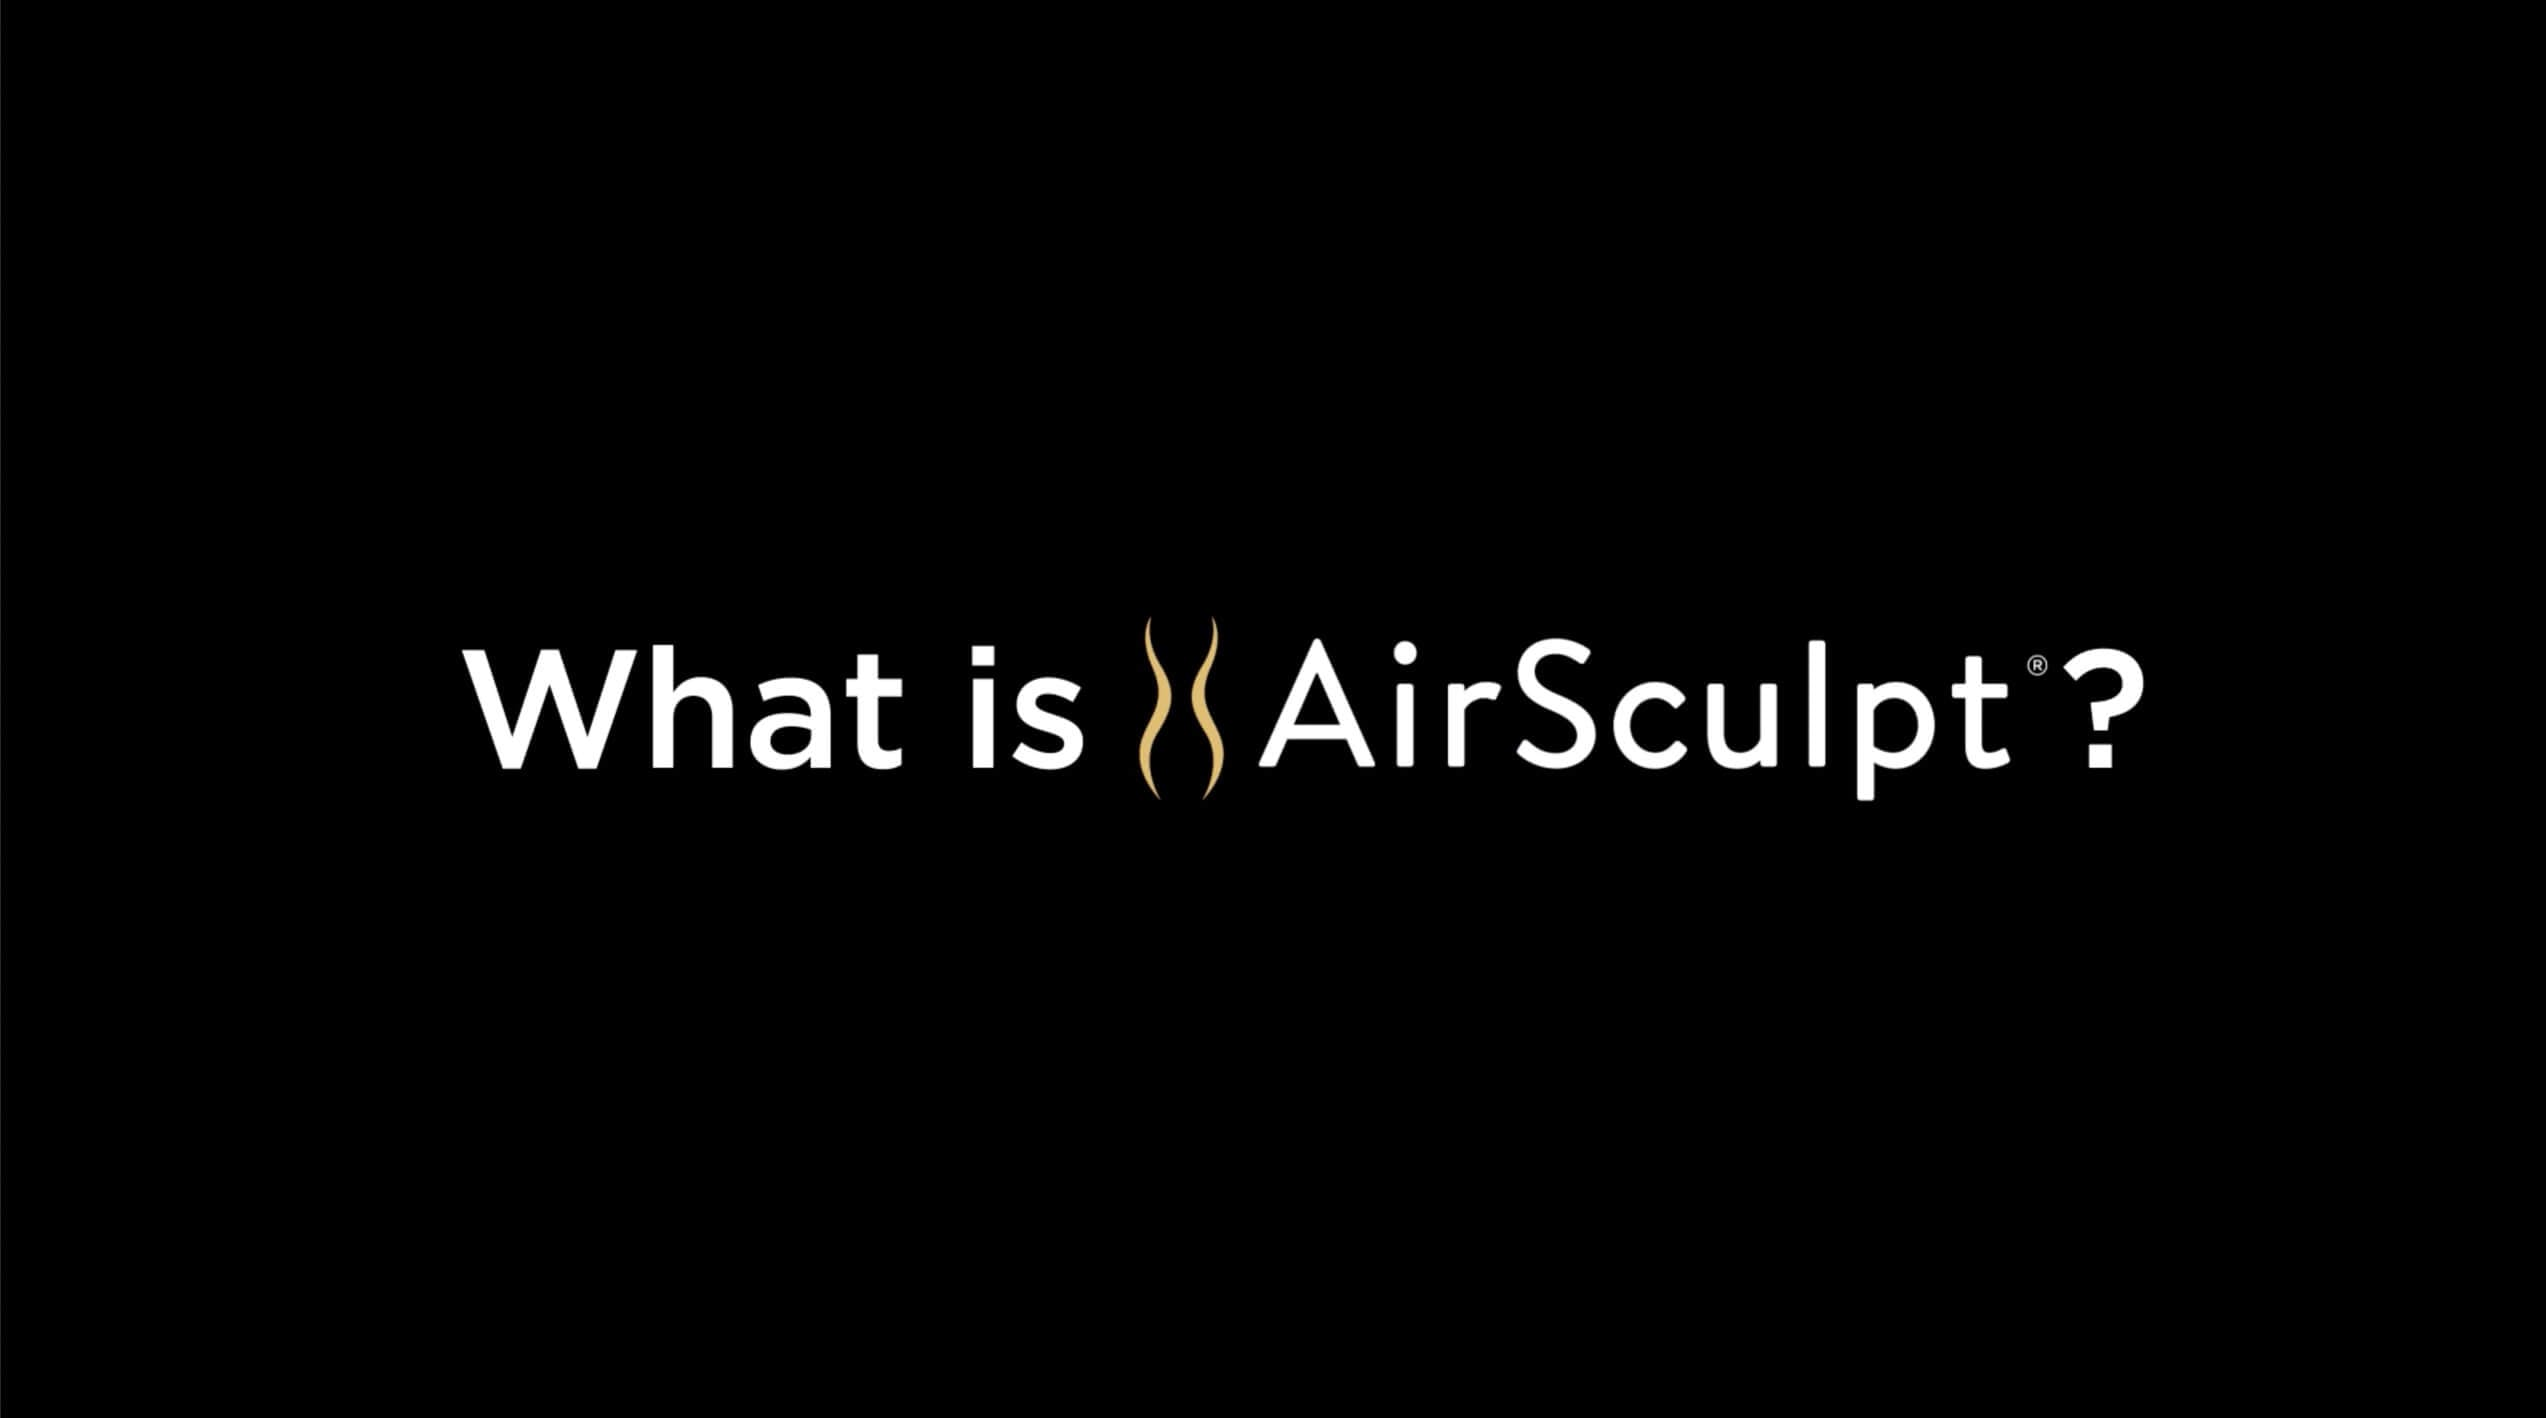 What is AirSculpt?